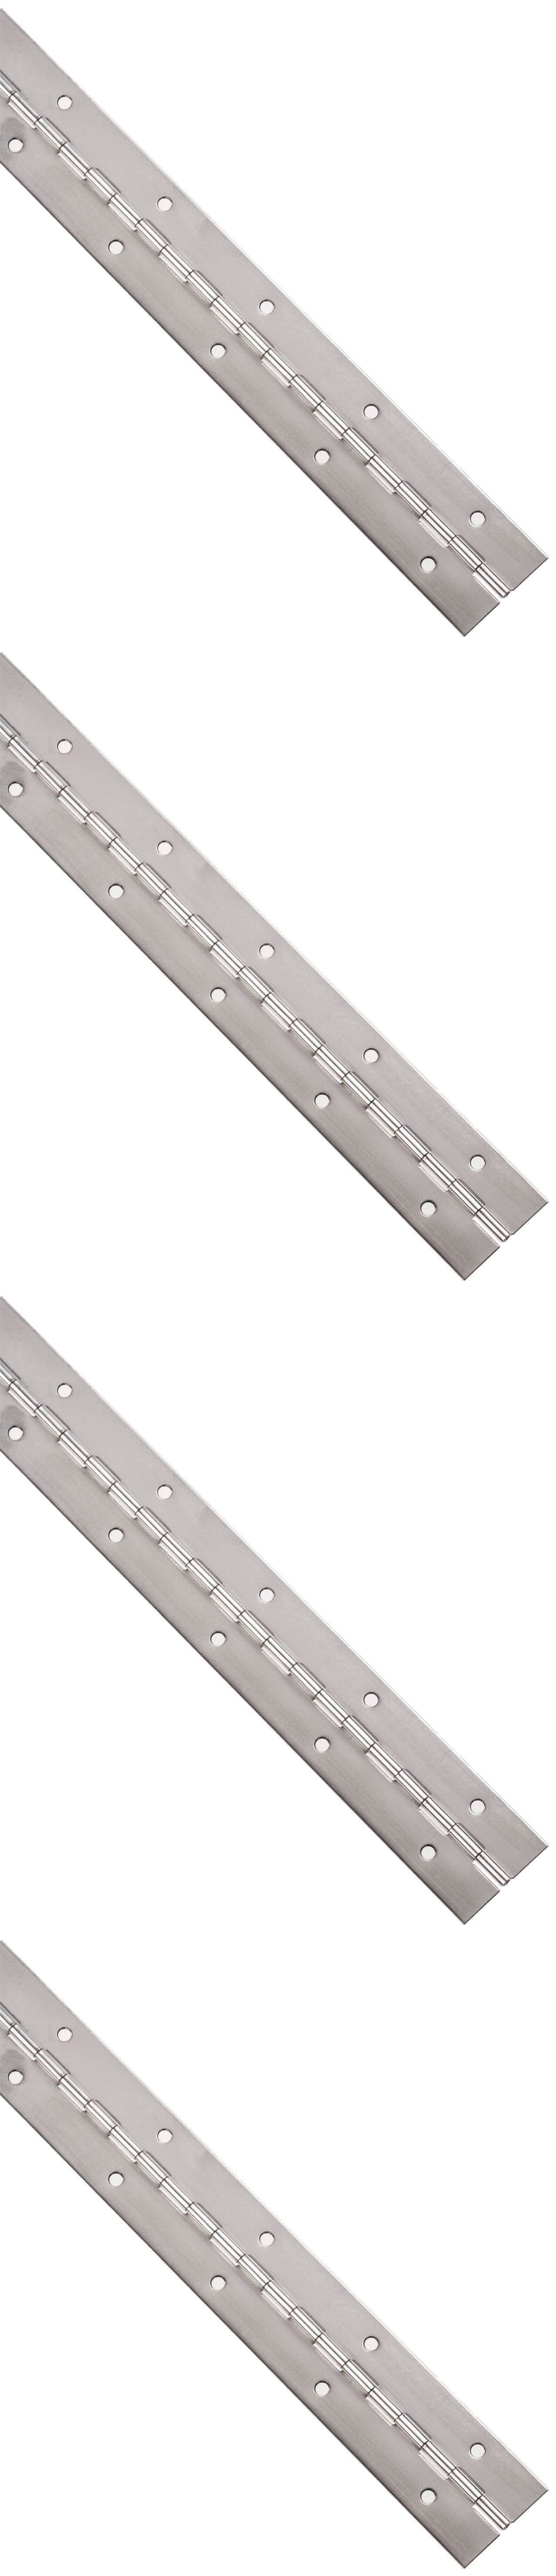 Door Hinges 66739 Stainless Steel 304 Sturdy Surface Mounted Continuous Piano Hinge With Holes Buy It Now Only 23 37 On Ebay Stainless Steel 304 Steel Door Hinges